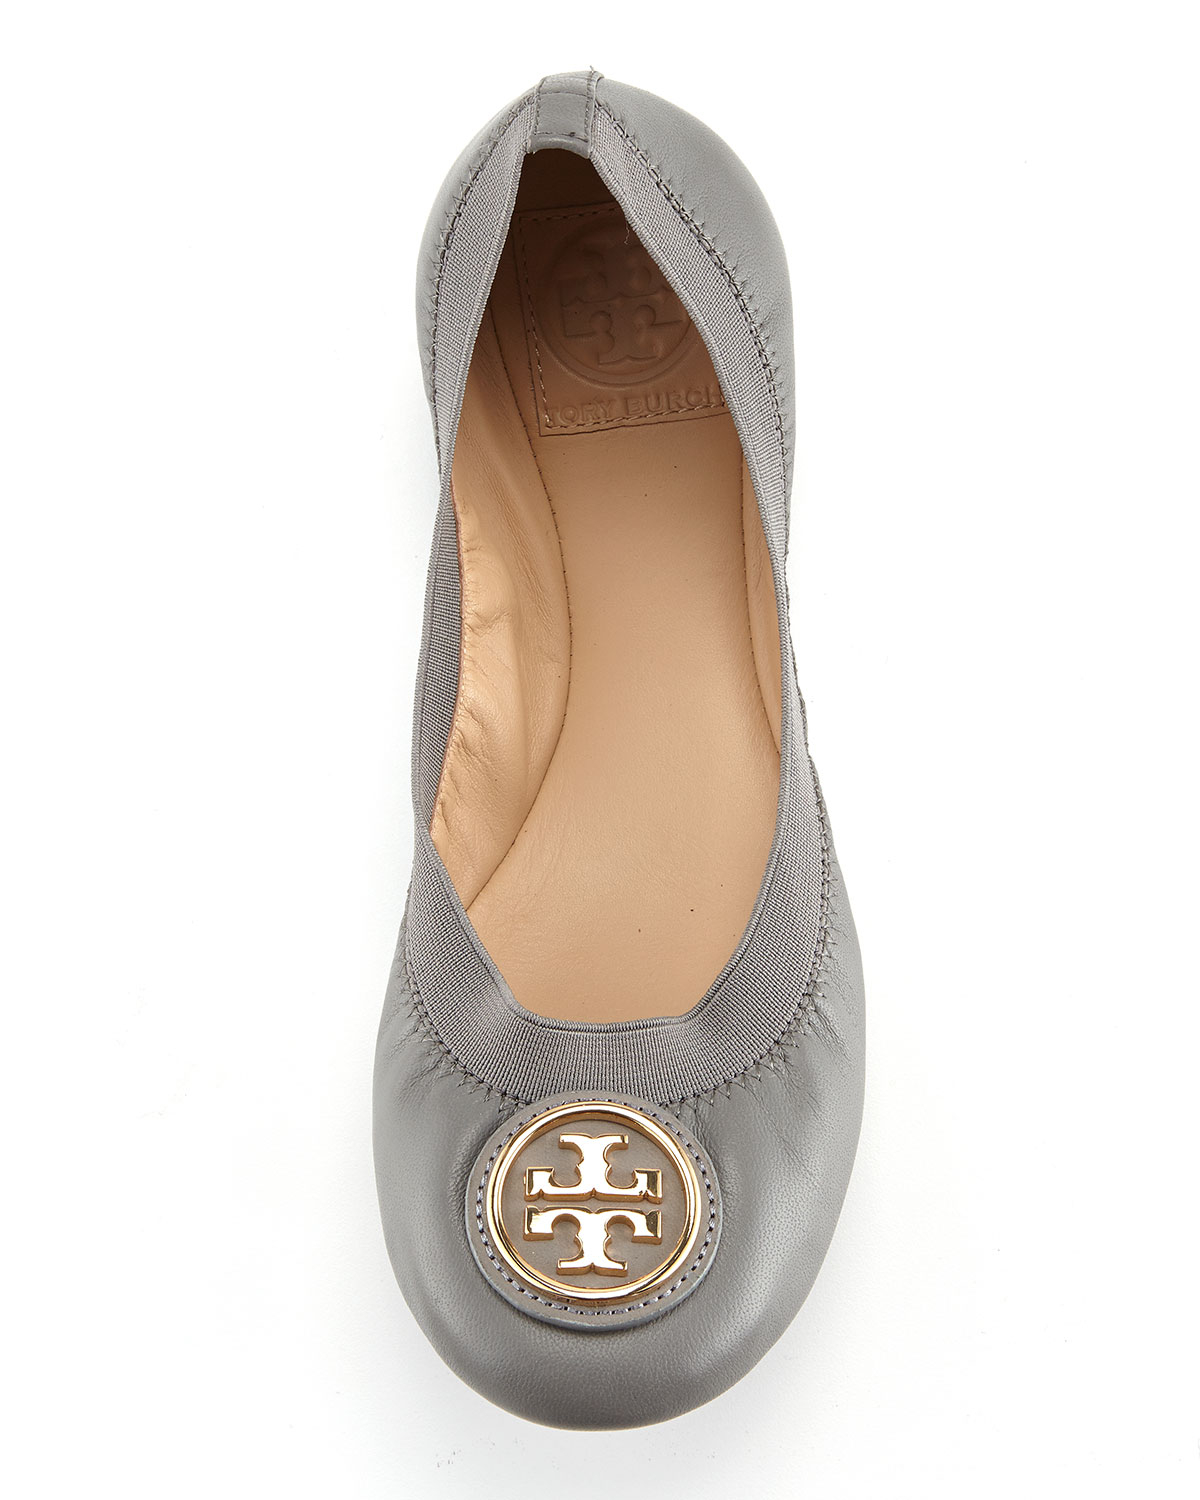 e8e68a063f18 Lyst - Tory Burch Caroline Leather Ballerina Flat in Gray